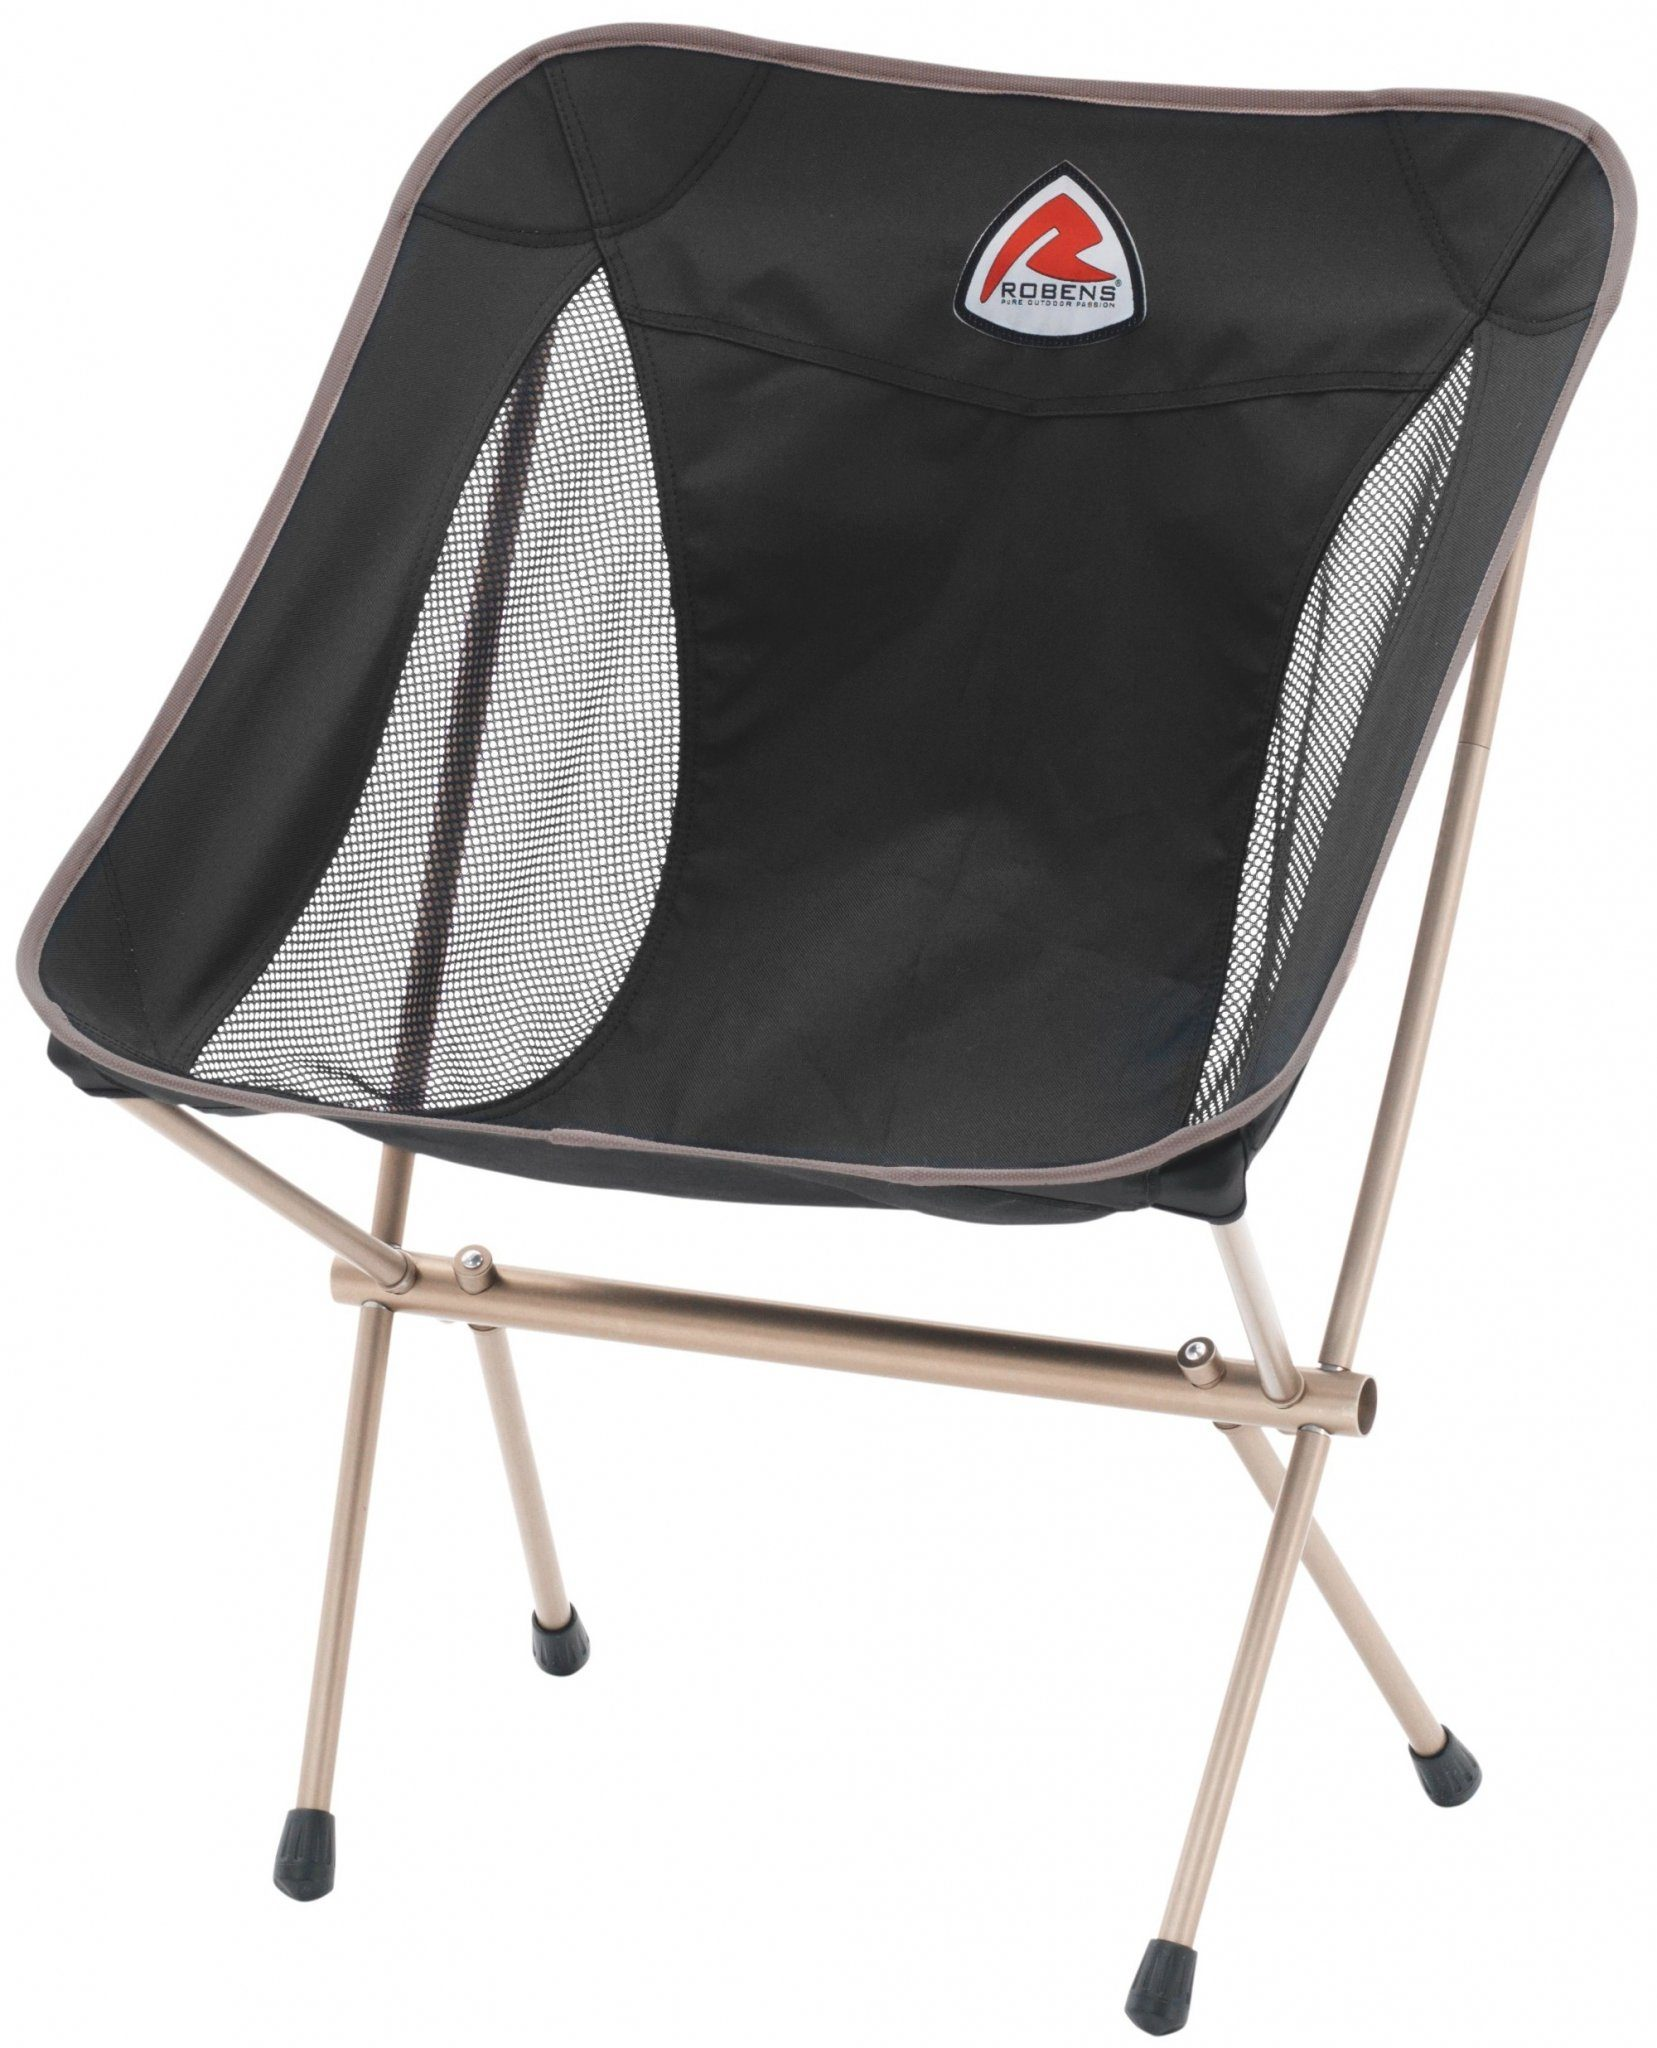 Robens Camping-Stuhl »Pathfinder Folding Chair«